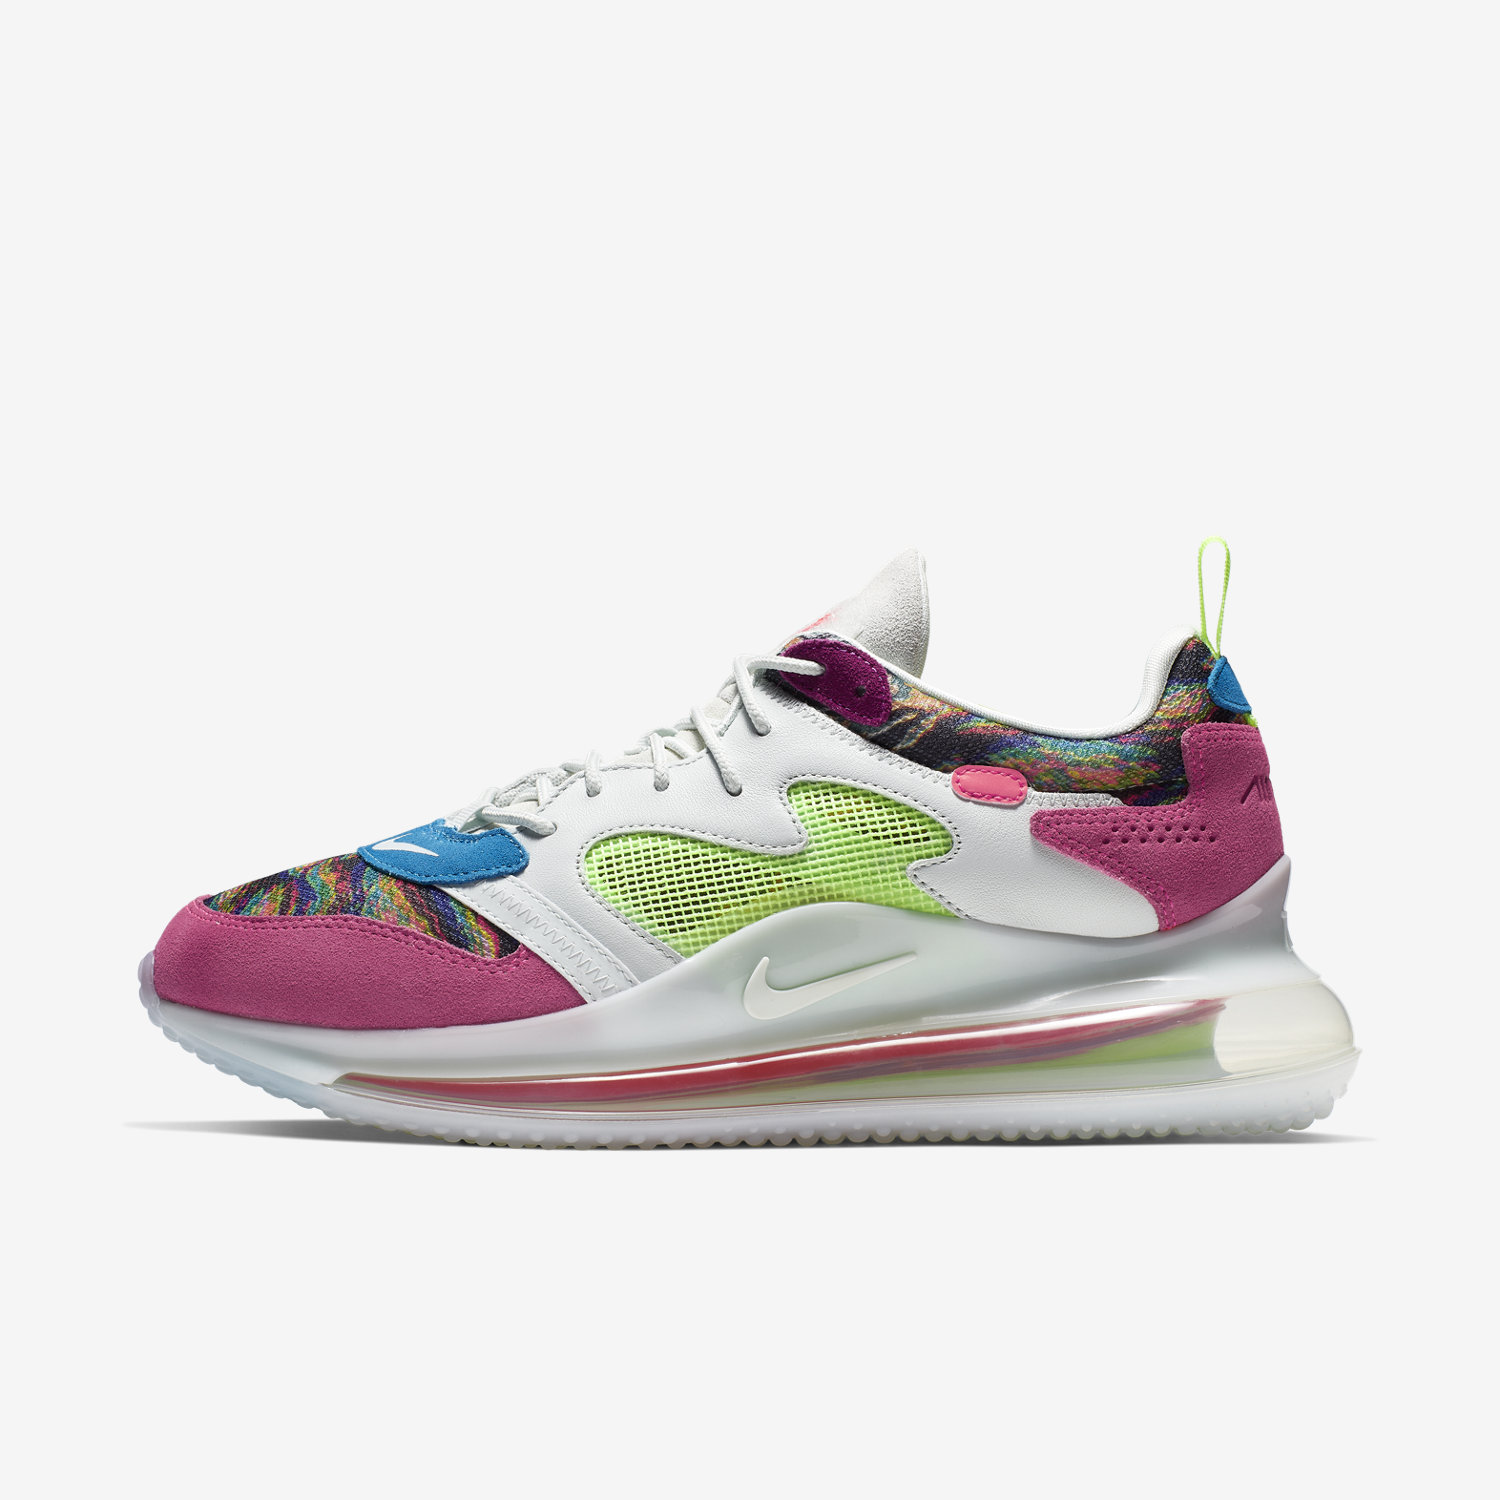 Air Max Running Nike Air Max 720 Obj Men S Running Shoe